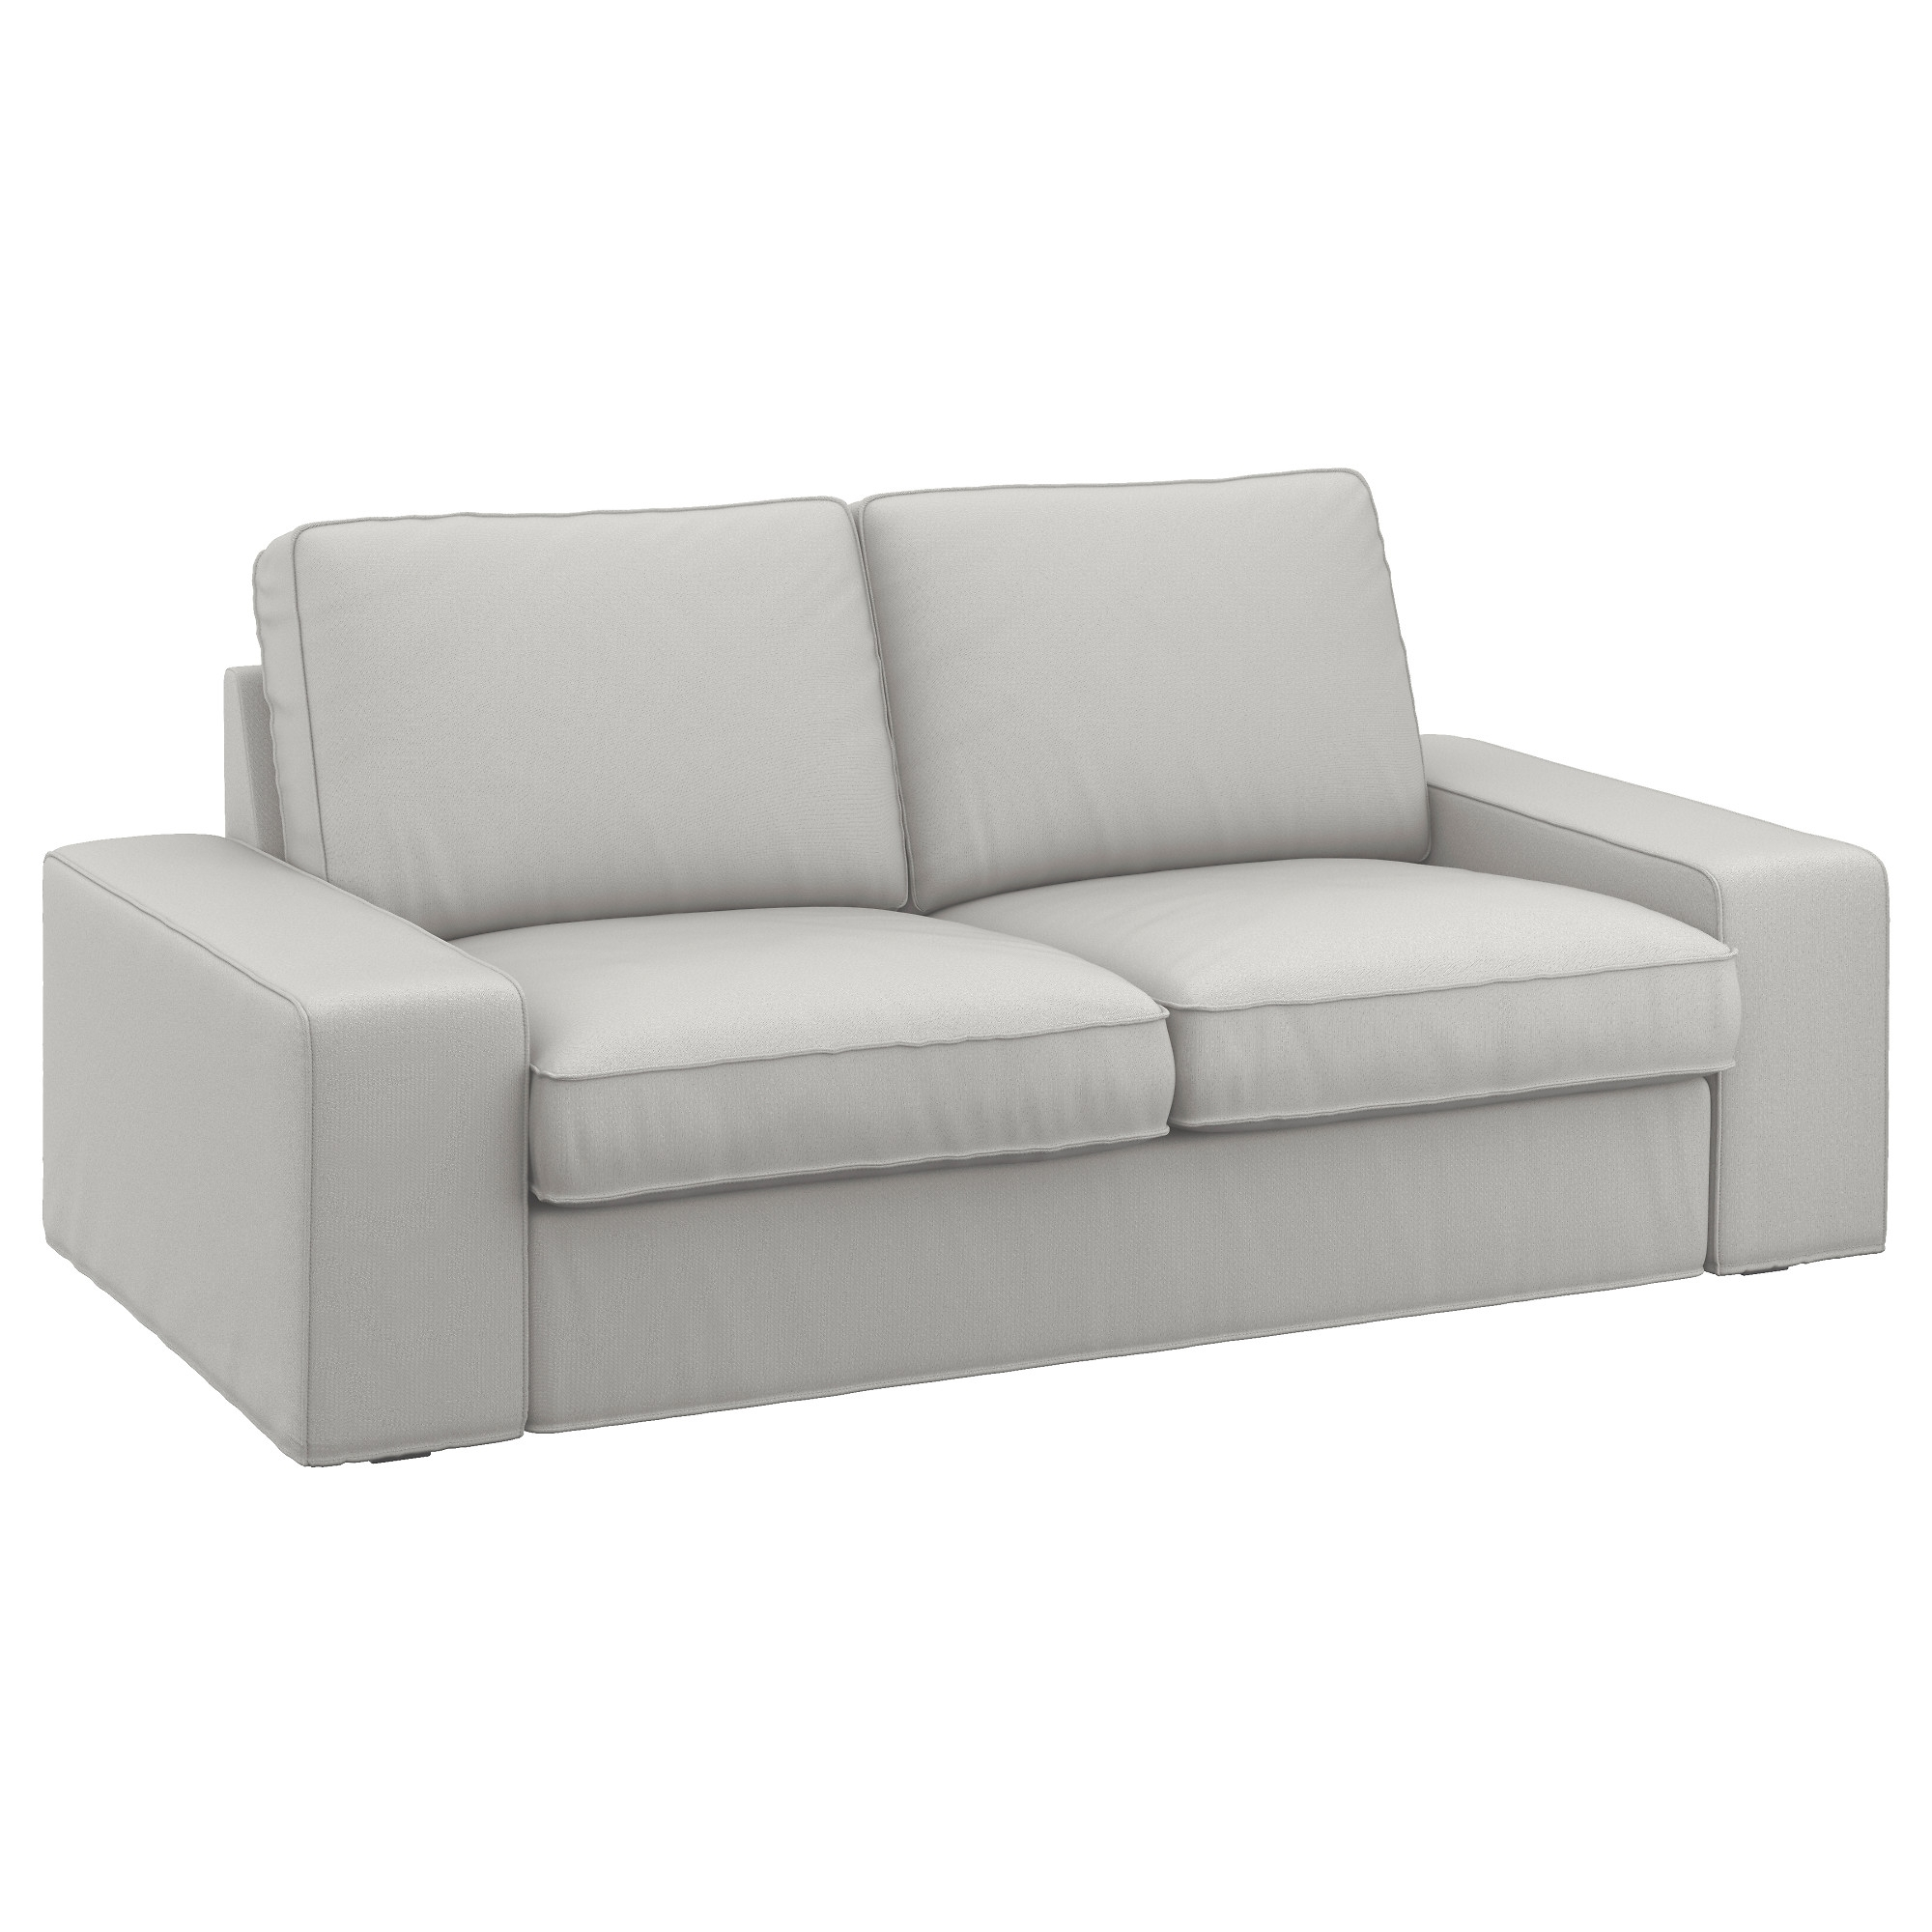 Most Up To Date Kivik Two Seat Sofa Ramna Light Grey – Ikea In Ikea Two Seater Sofas (View 2 of 20)